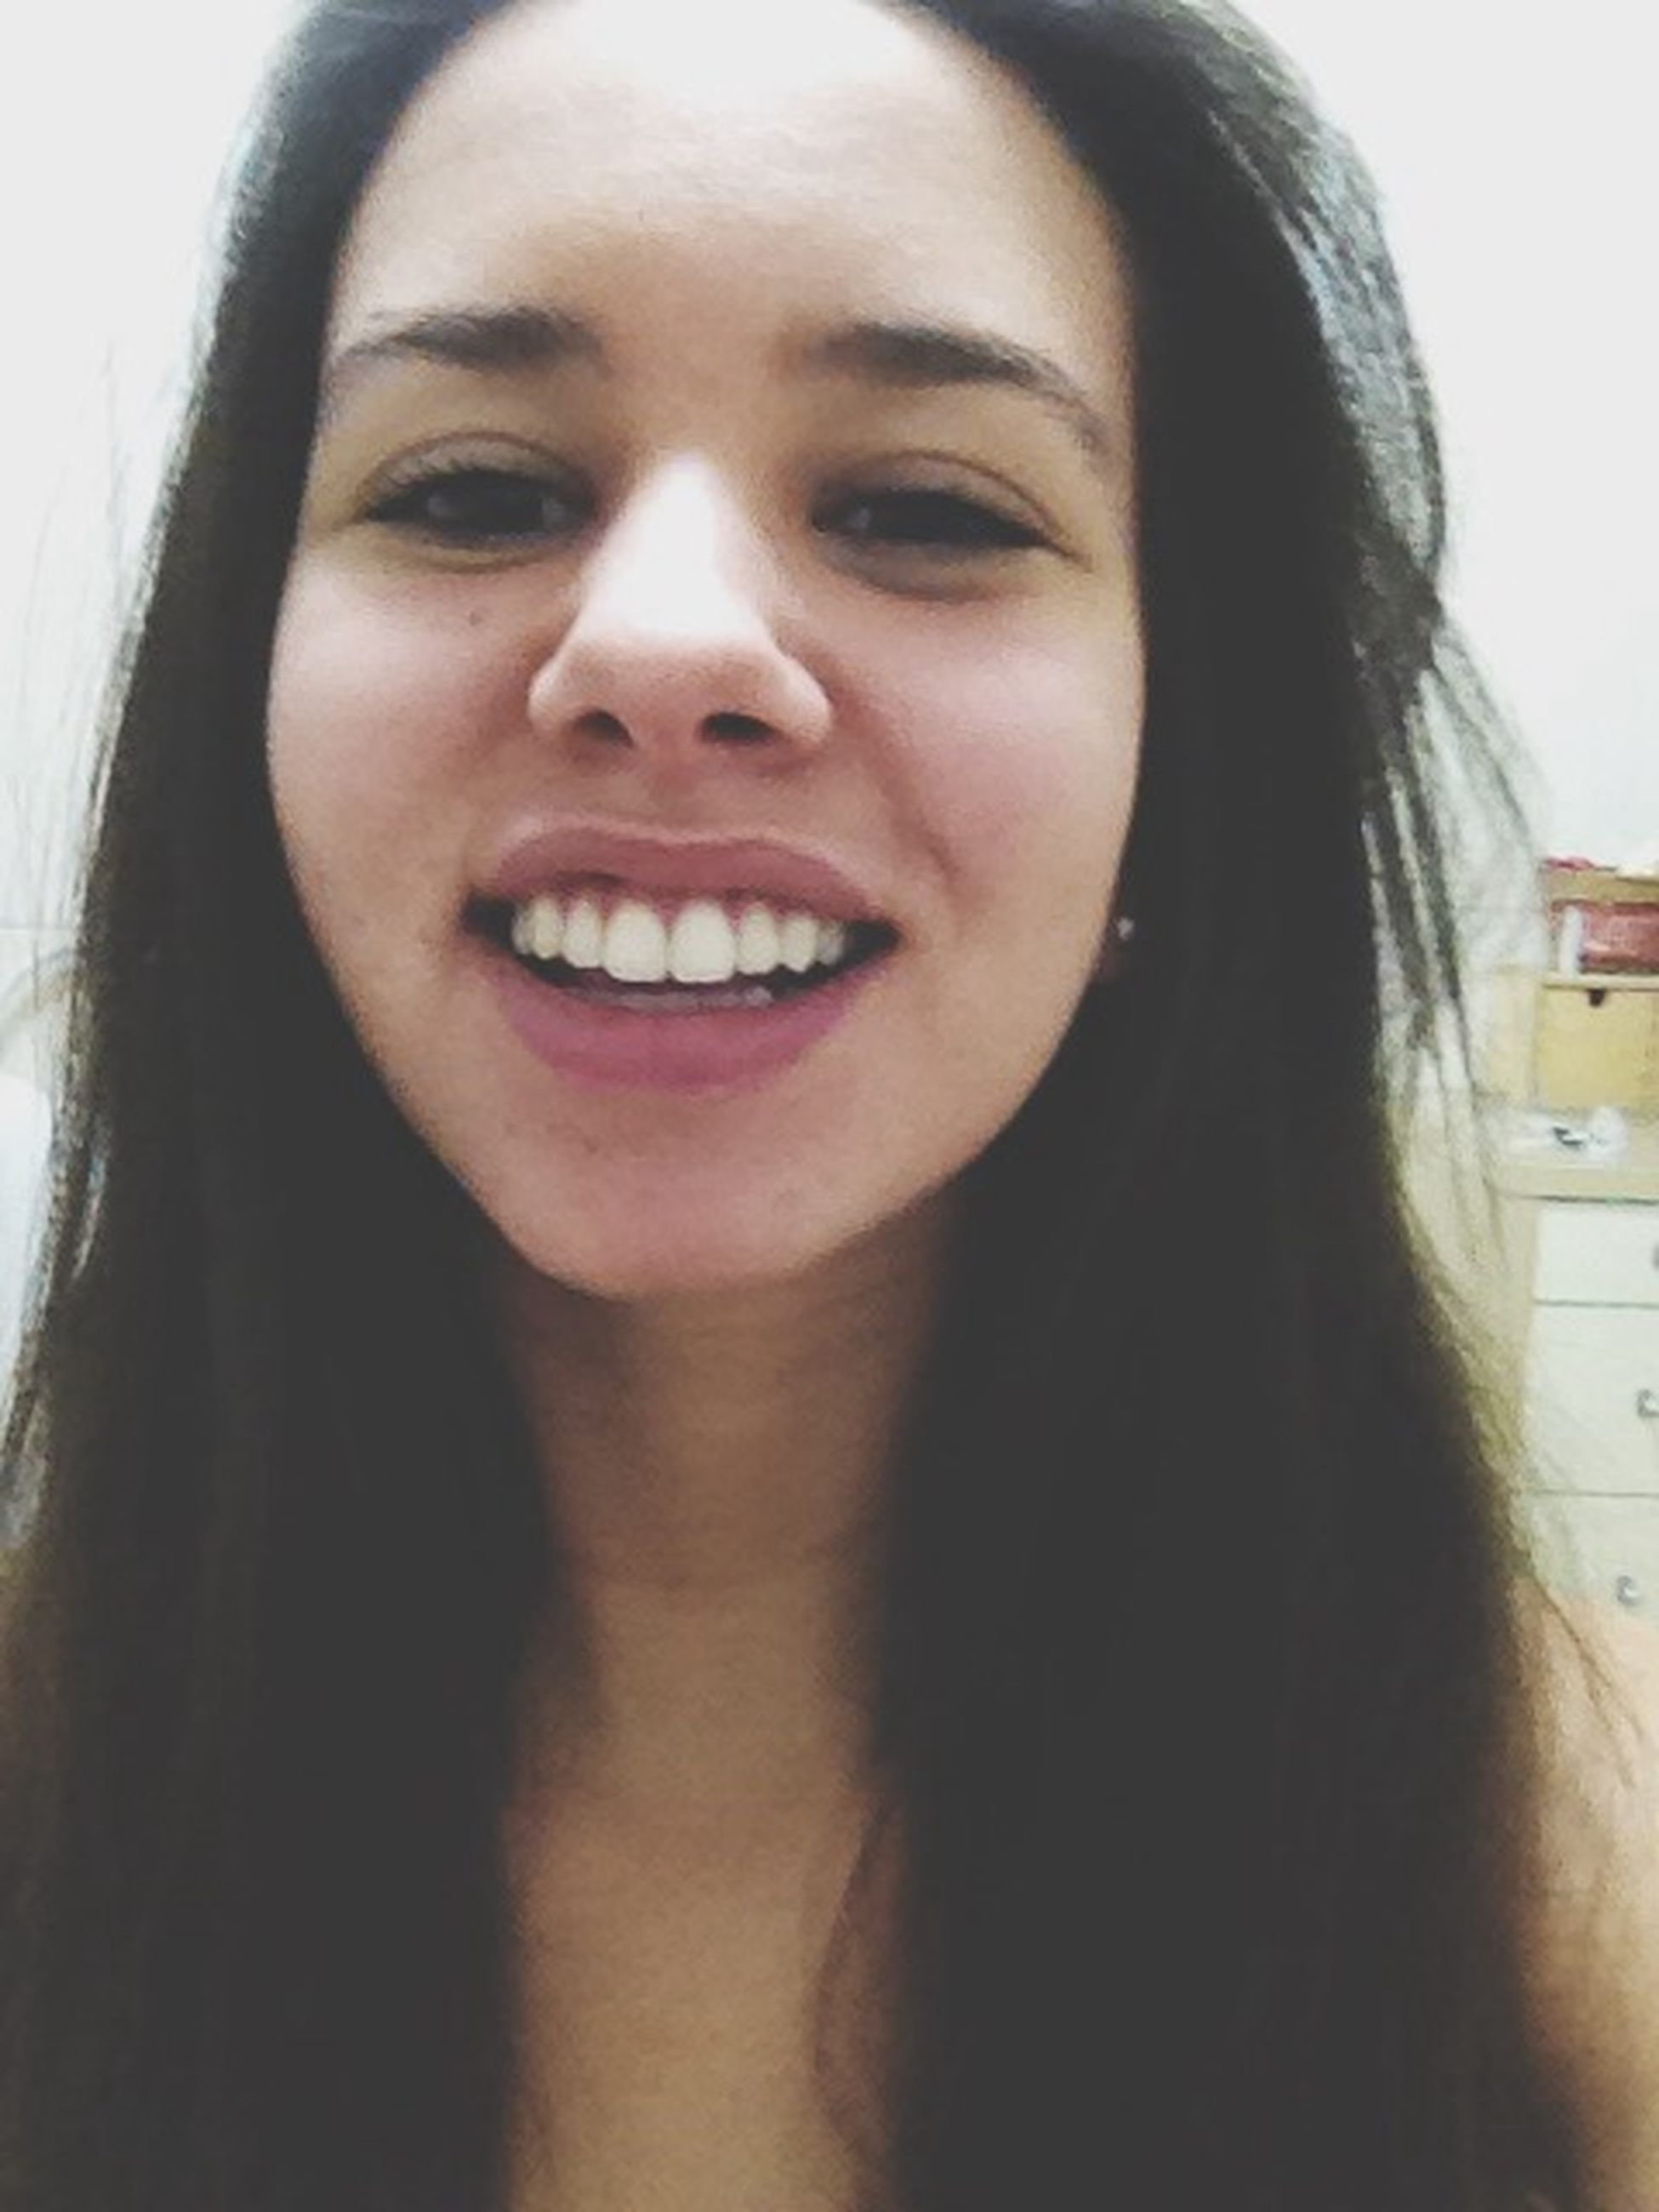 headshot, person, looking at camera, portrait, lifestyles, young adult, close-up, front view, human face, leisure activity, young women, head and shoulders, smiling, indoors, mid adult, focus on foreground